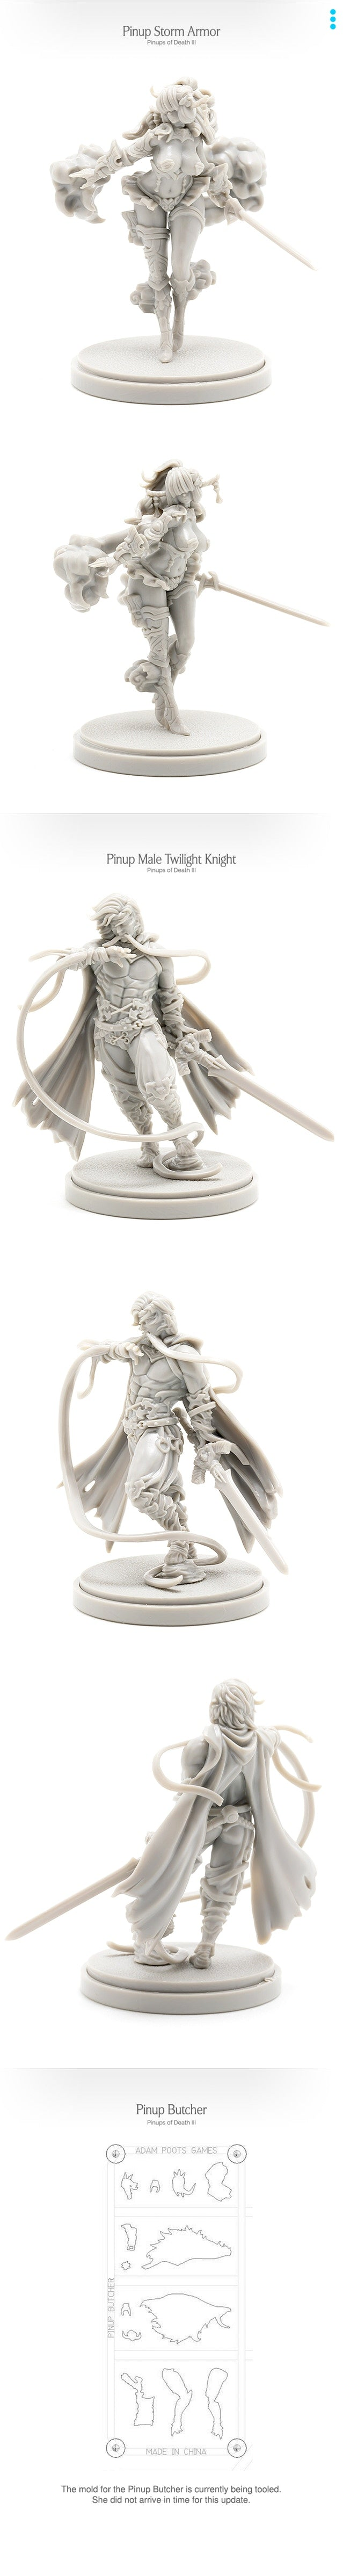 kingdom death monster kdm pinups of death iii pinups of death 3 kickstarter spillets steward thegamesteward